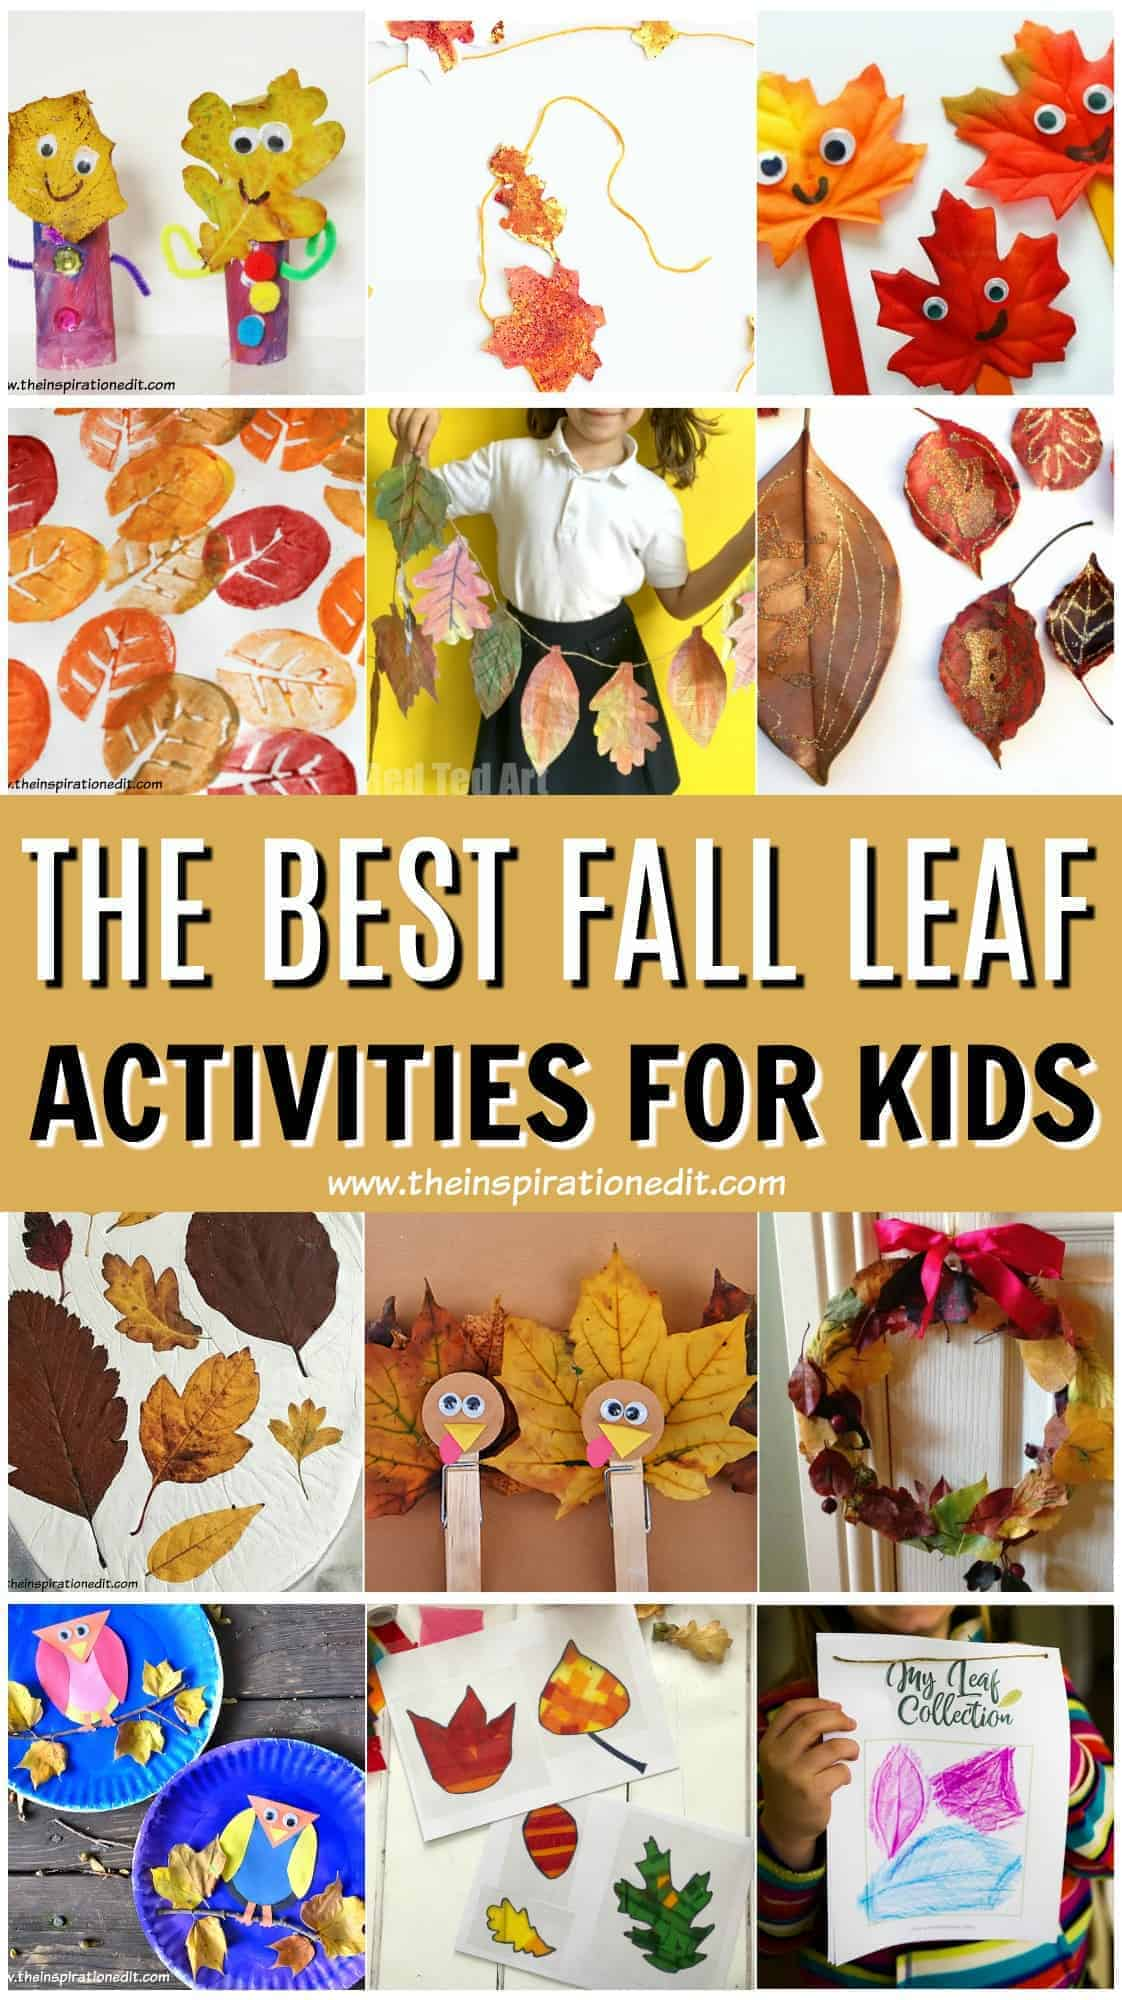 Leaf Autumn Crafts Kids Will Love The Inspiration Edit